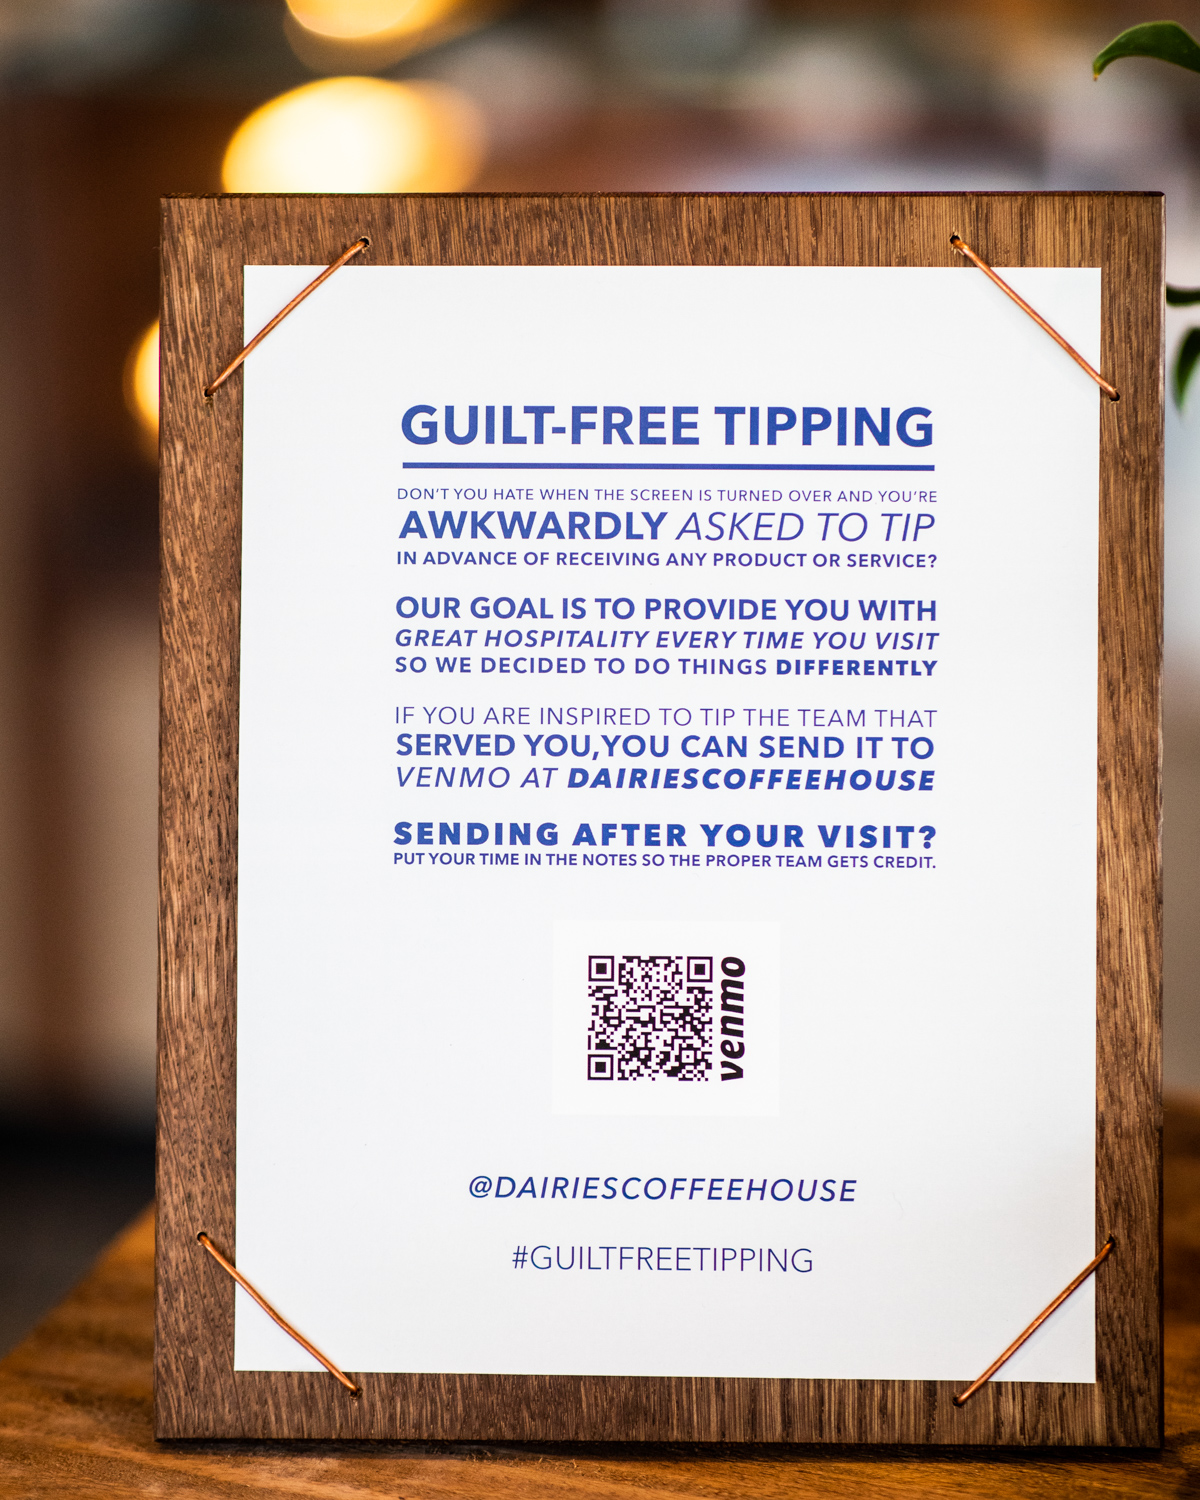 Guilt-free tipping in effect at Cold Brew Bar.